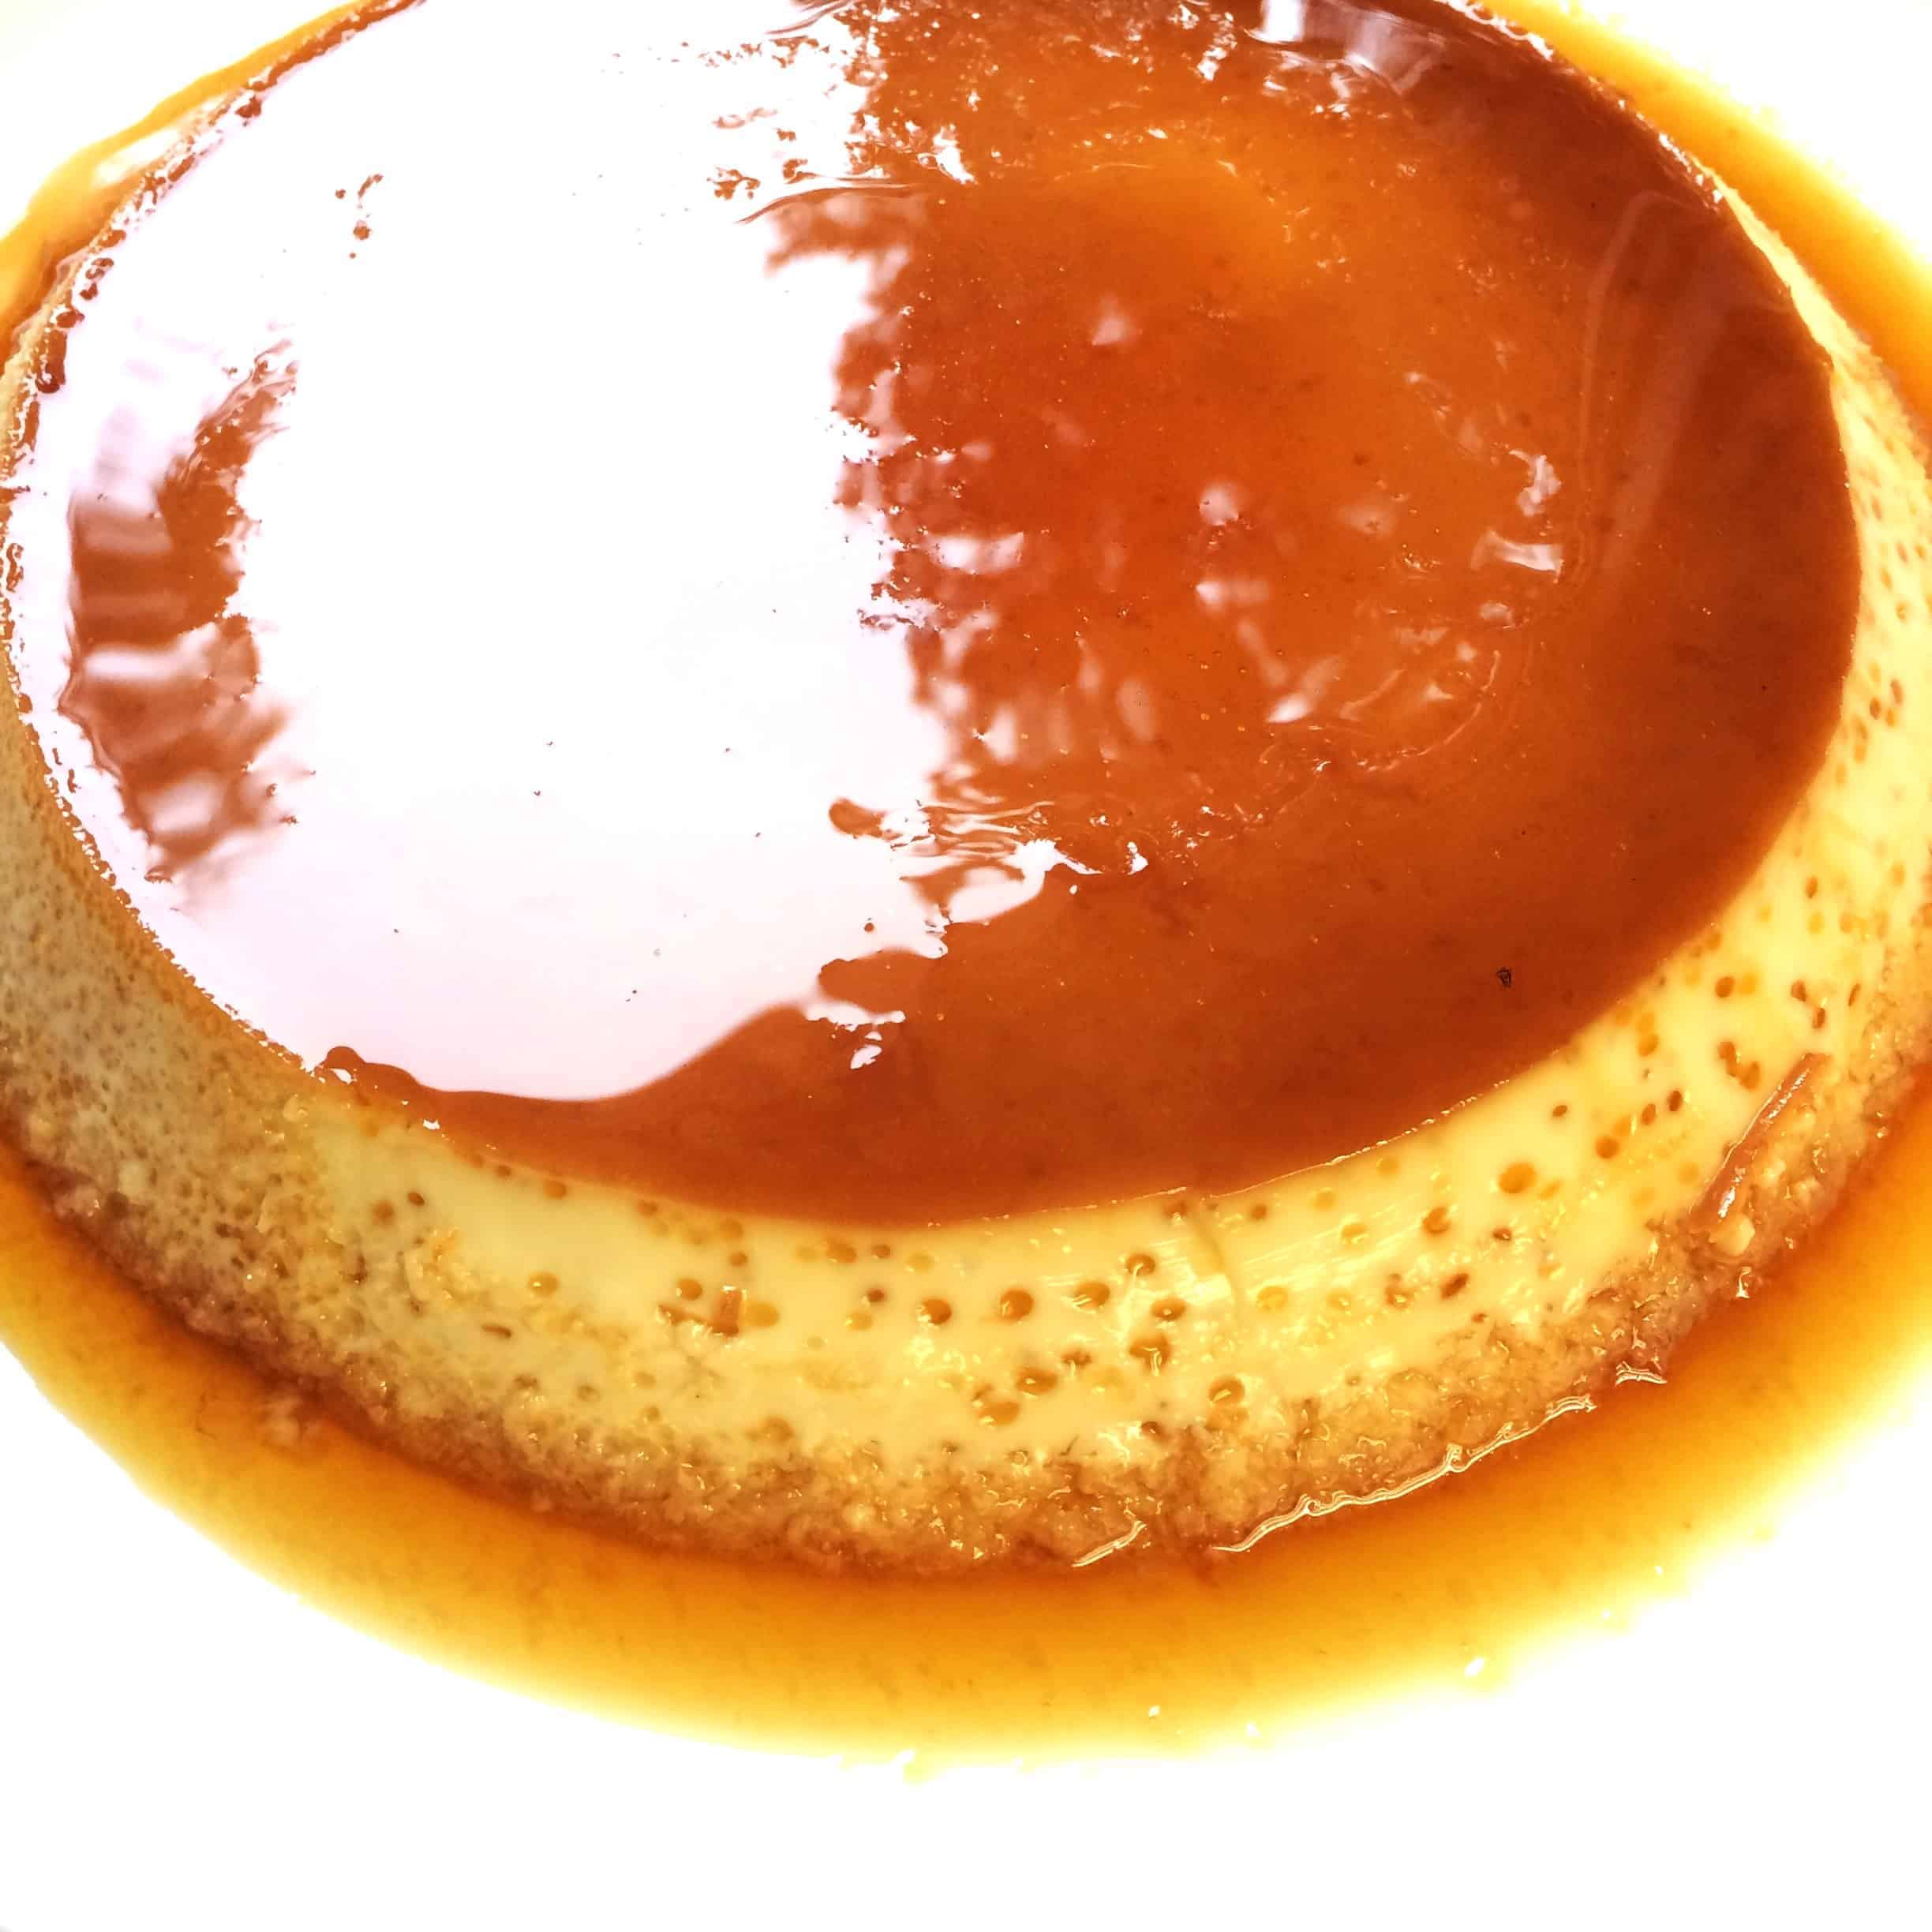 French Coconut Flan Recipe | Baking Like a Chef